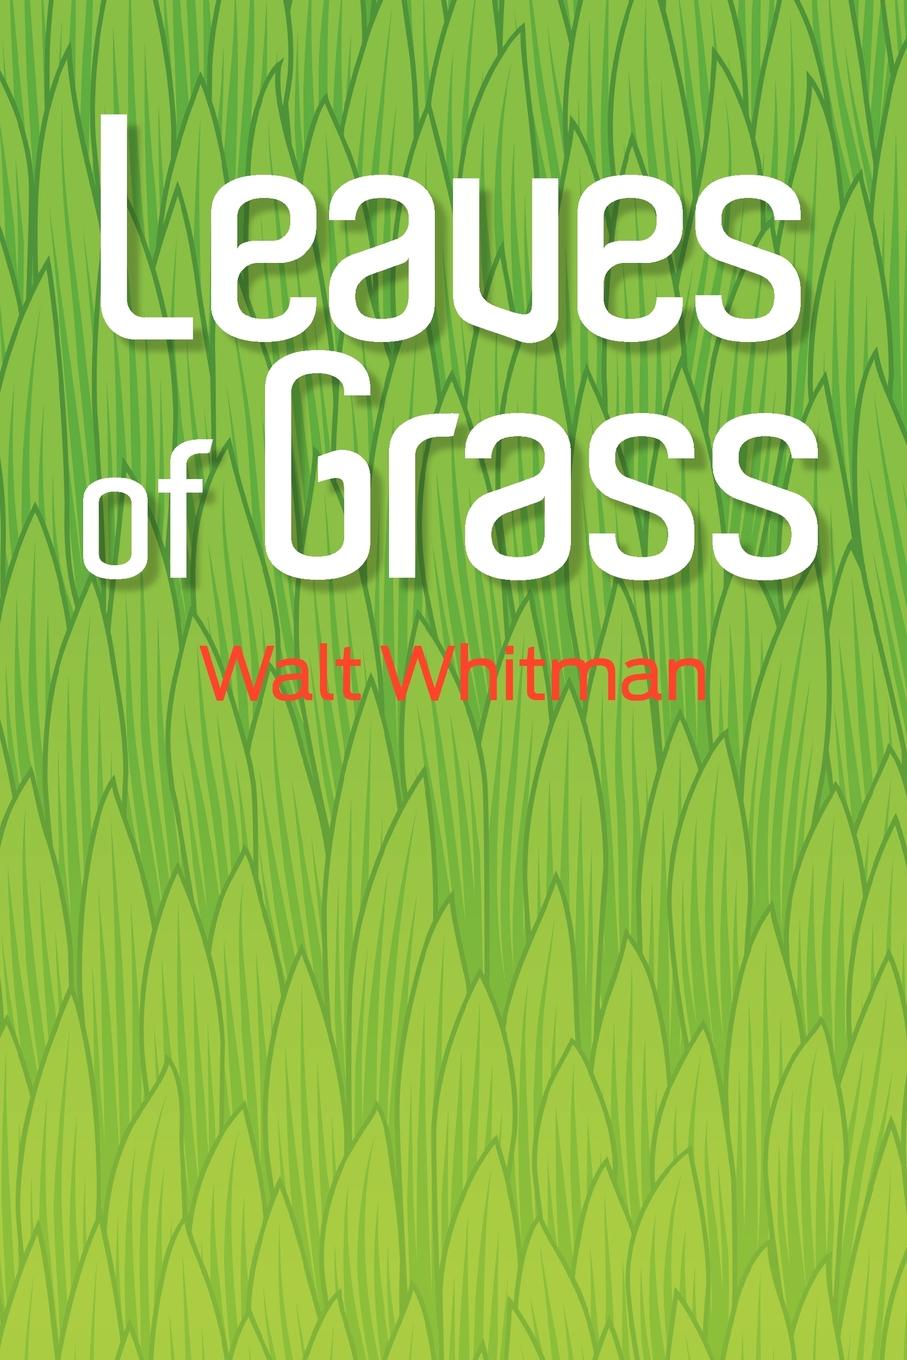 Walt Whitman Leaves of Grass. The Original 1855 Edition whitman w leaves of grass листья травы стихи на английском языке